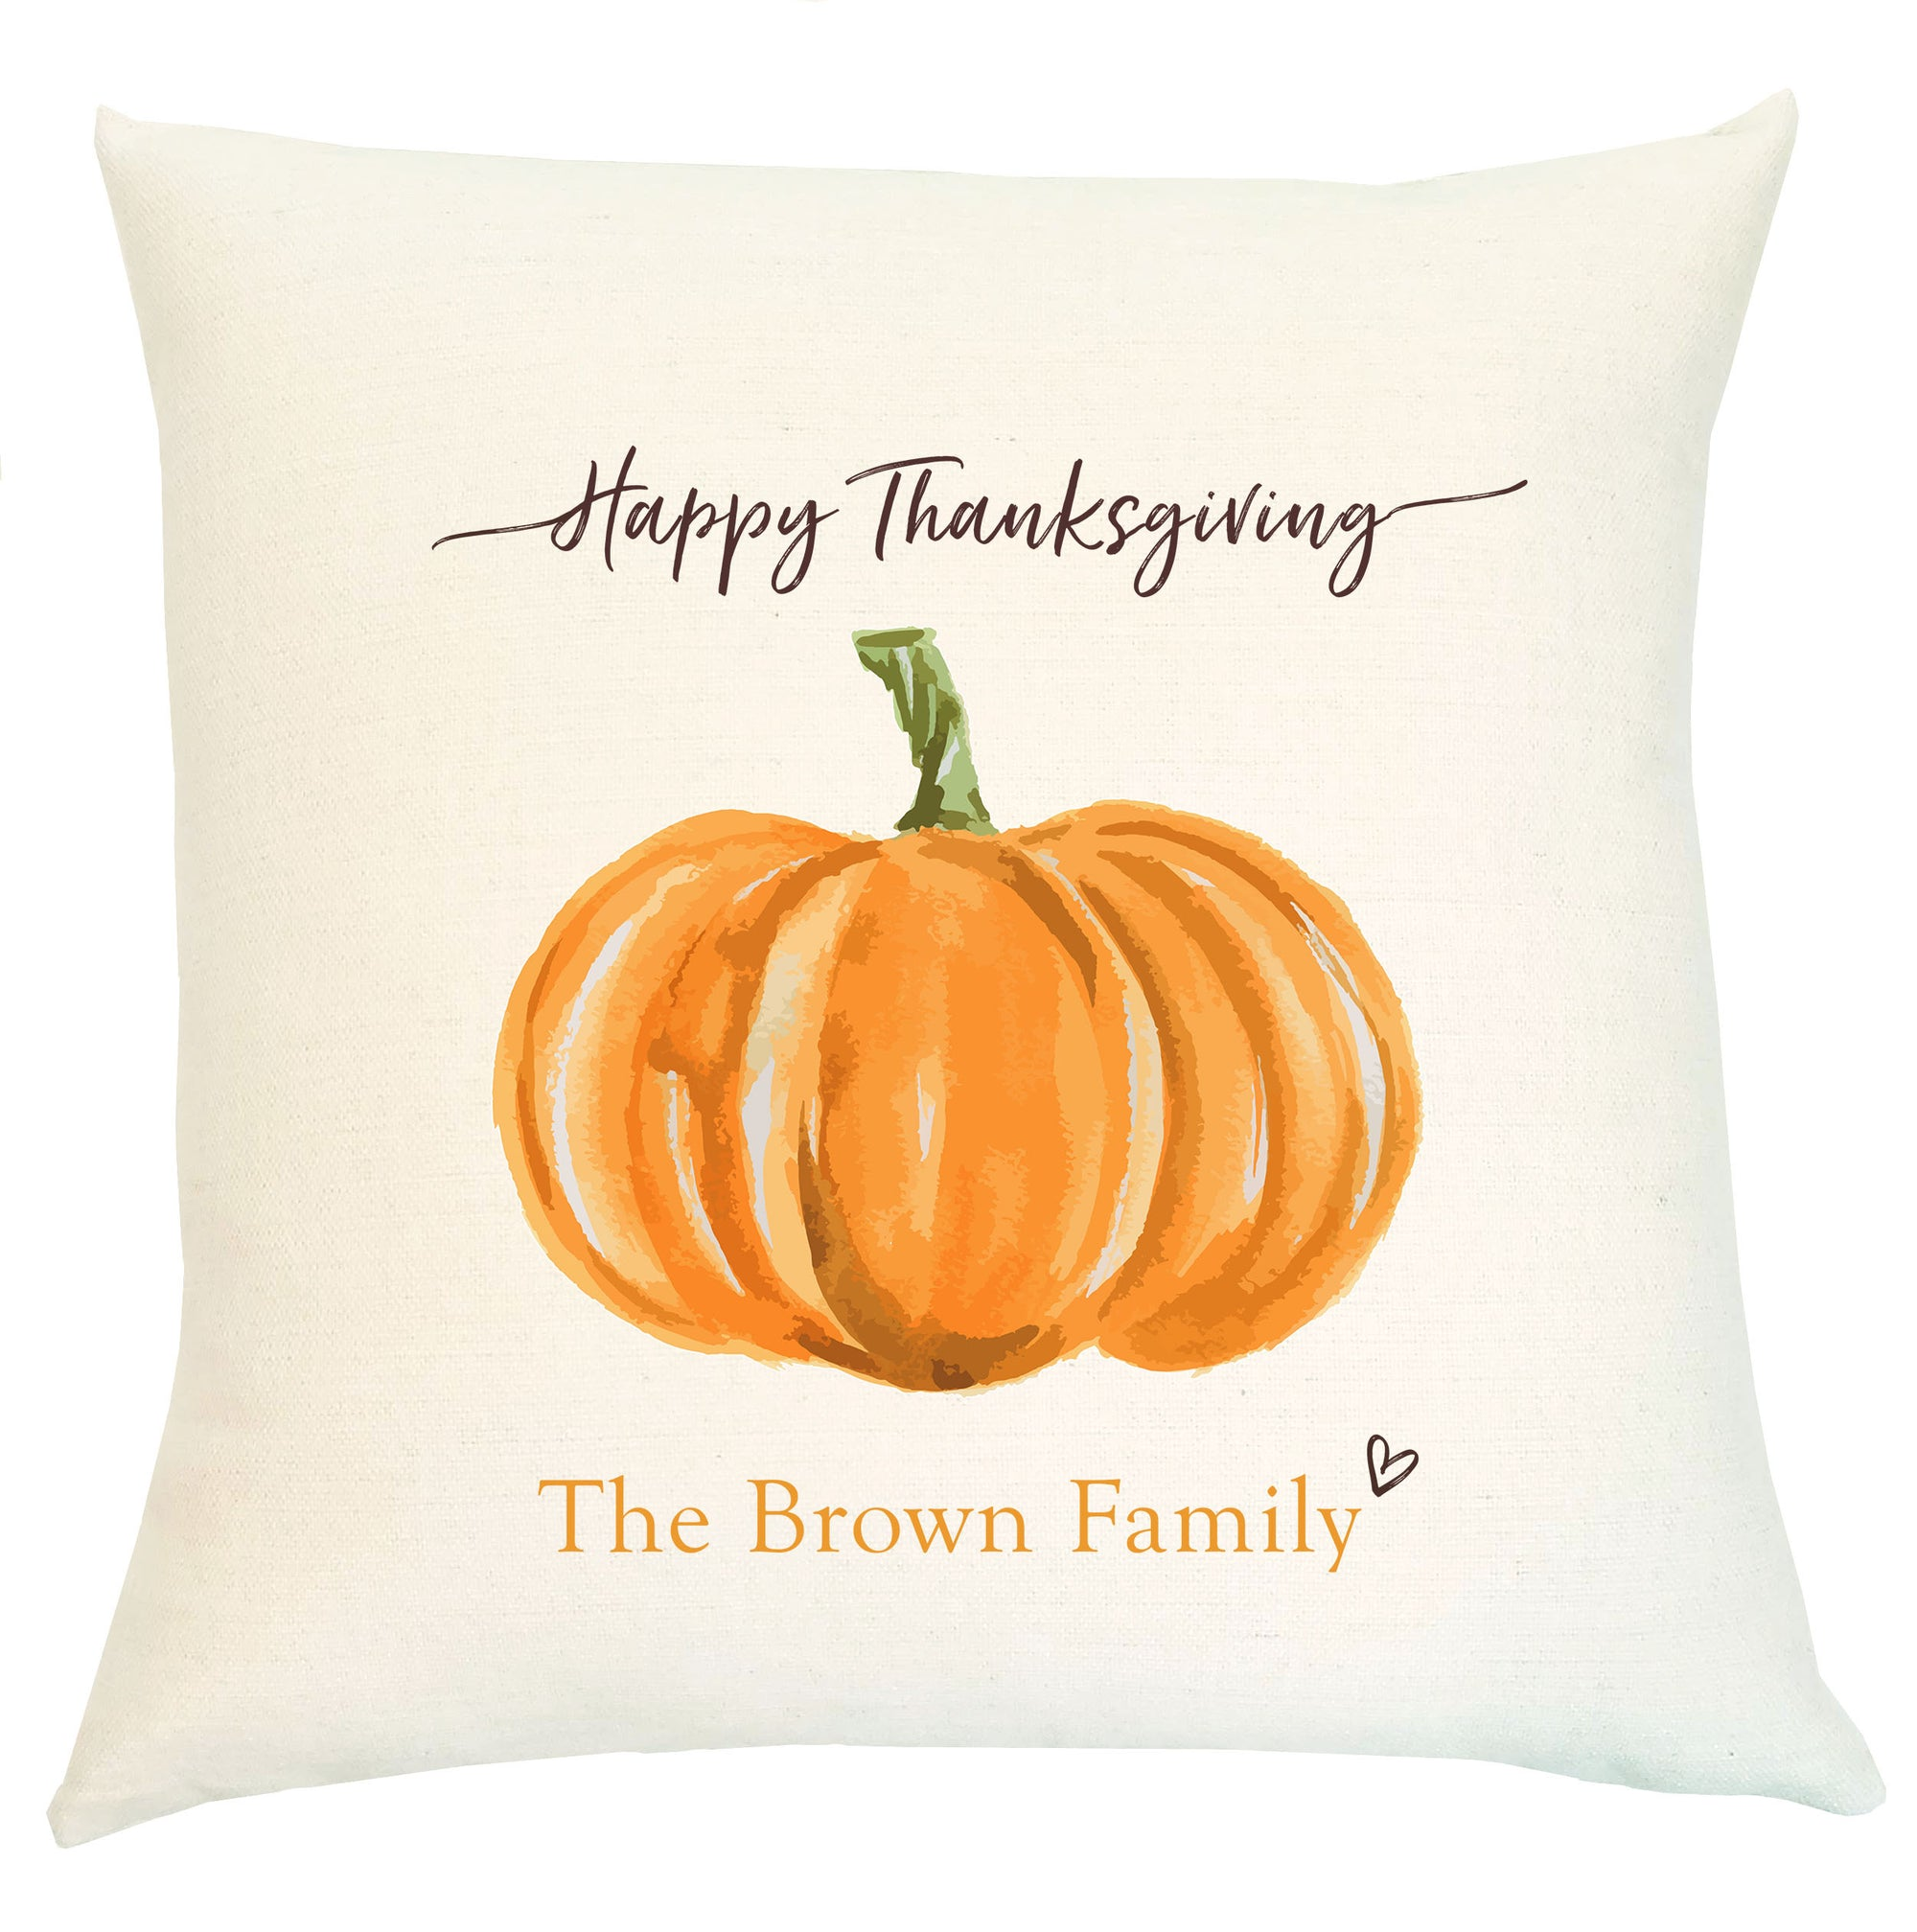 Pillow Personalized - Orange Pumpkin Happy Thanksgiving